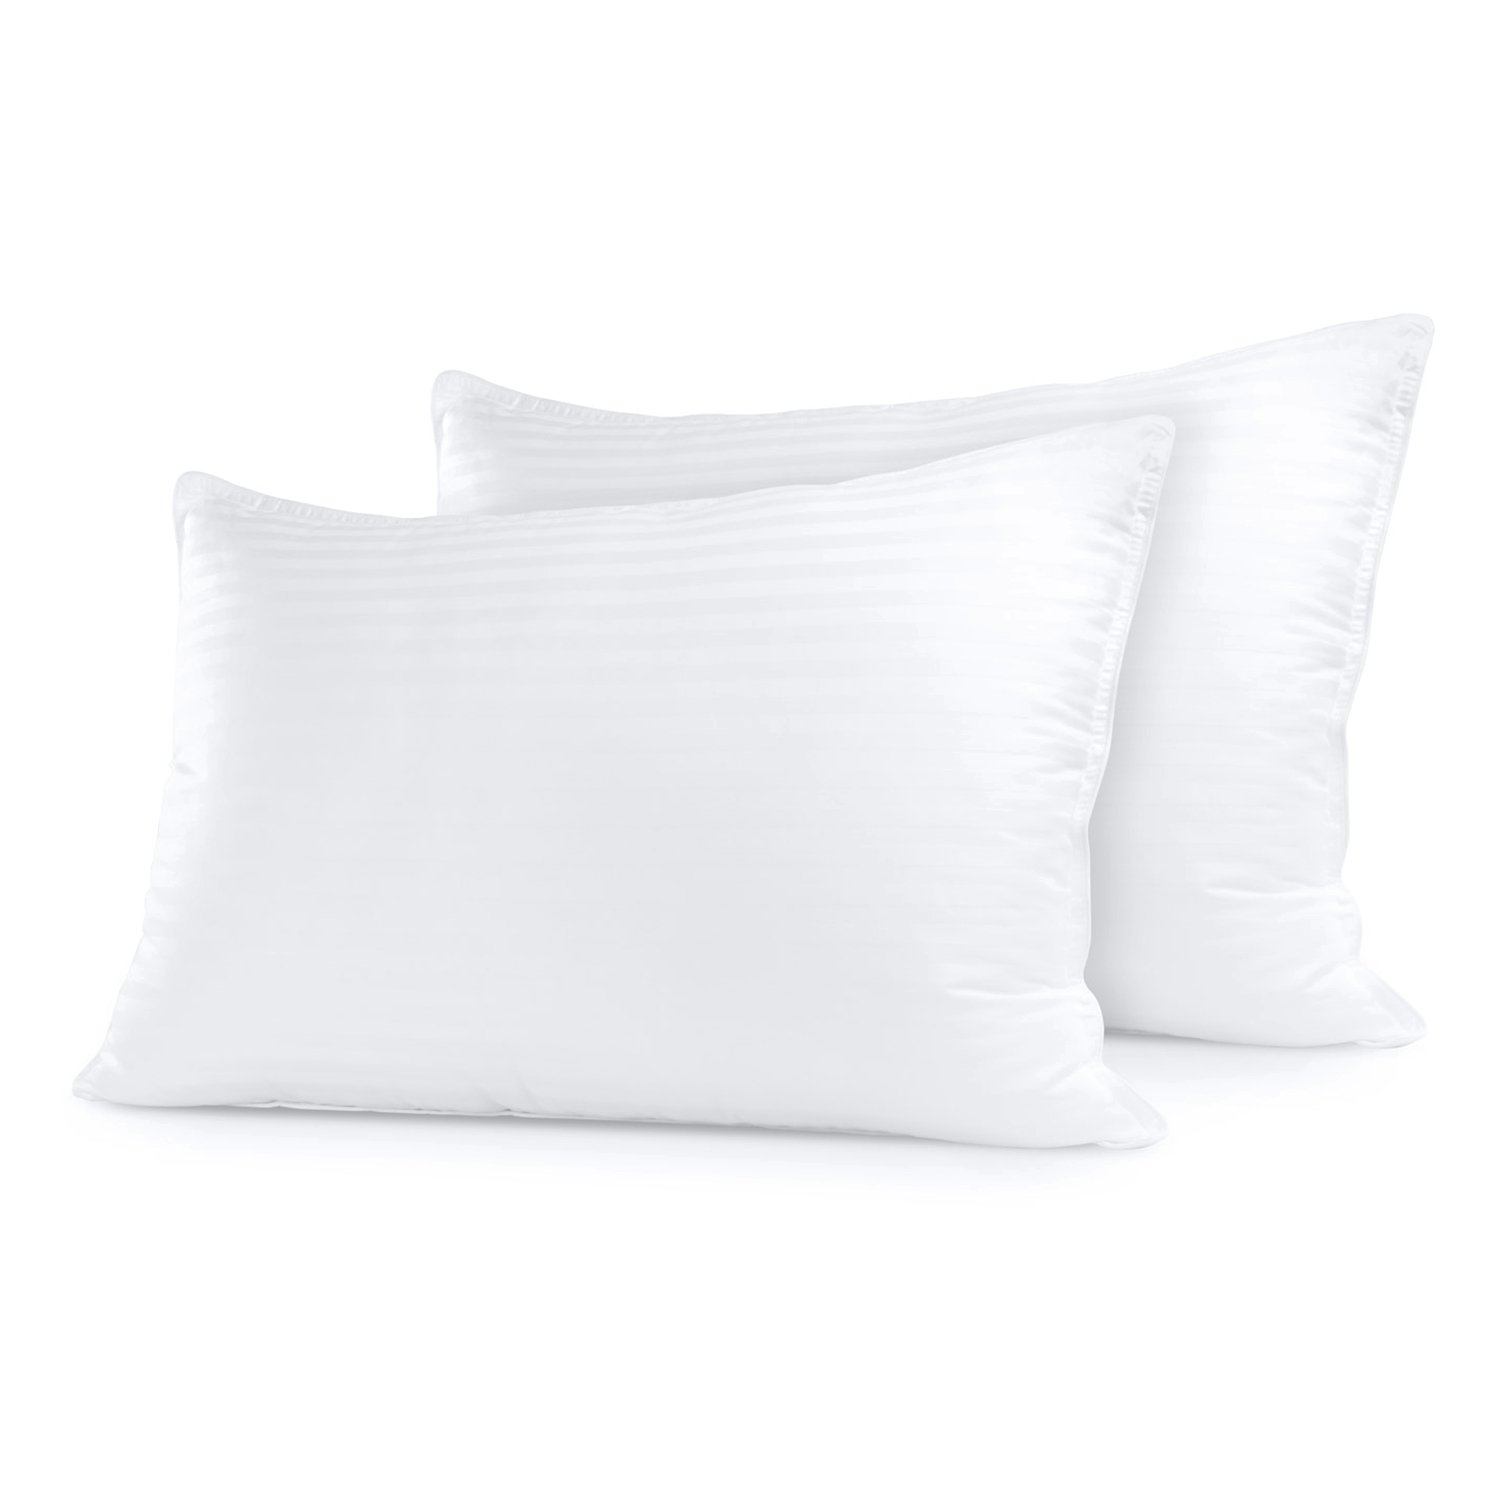 Best Sleeping Pillows For A Good Sleep Physician Advice